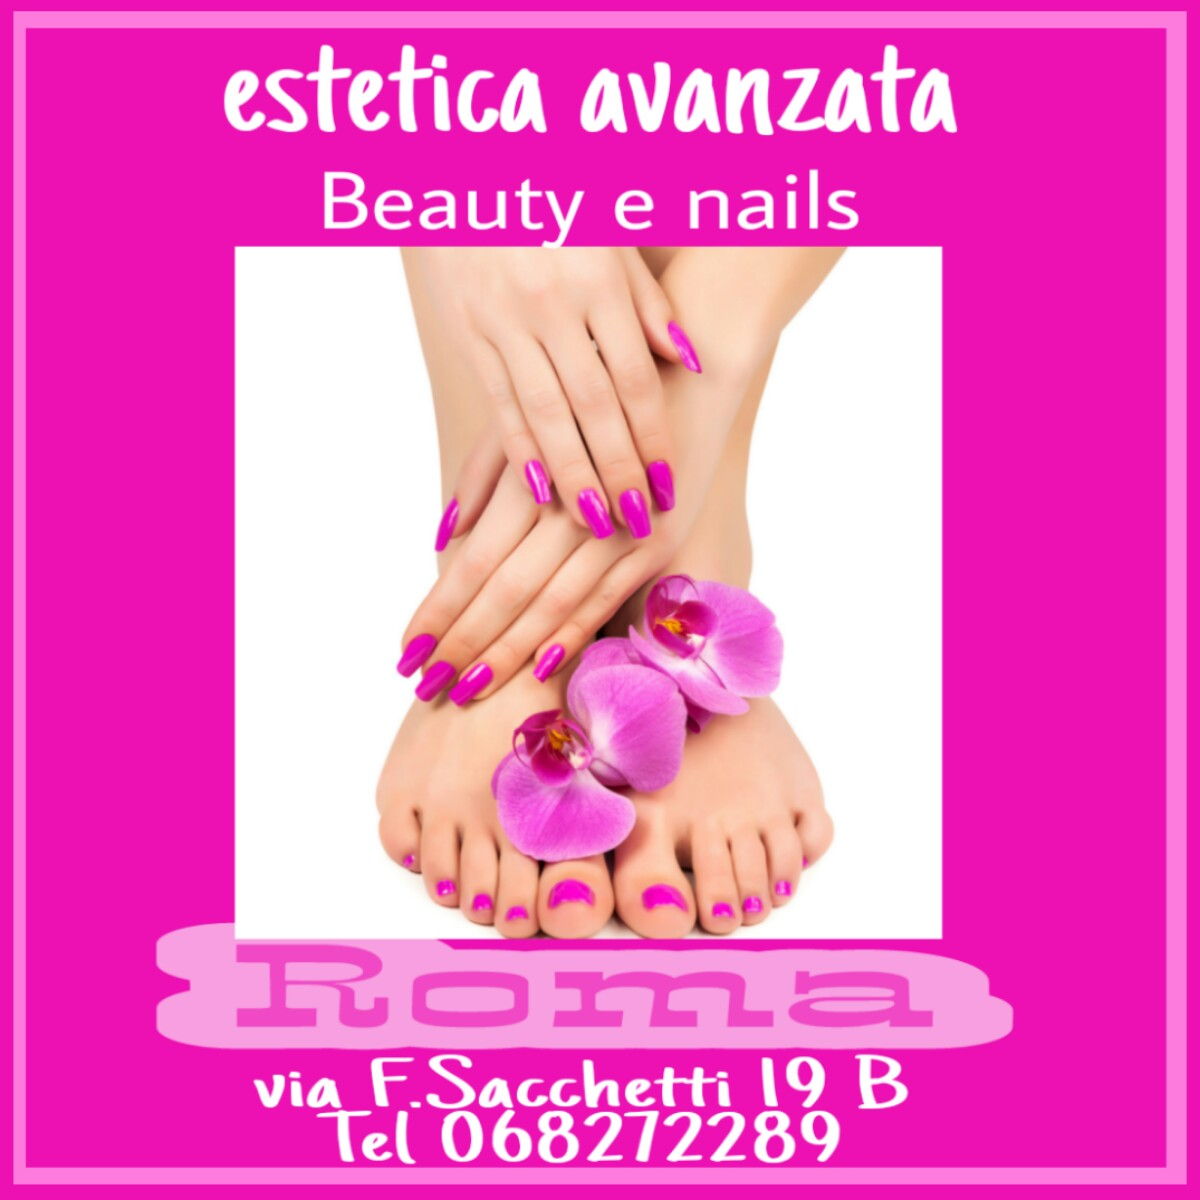 Estetica Avanzata Beauty e Nails Roma